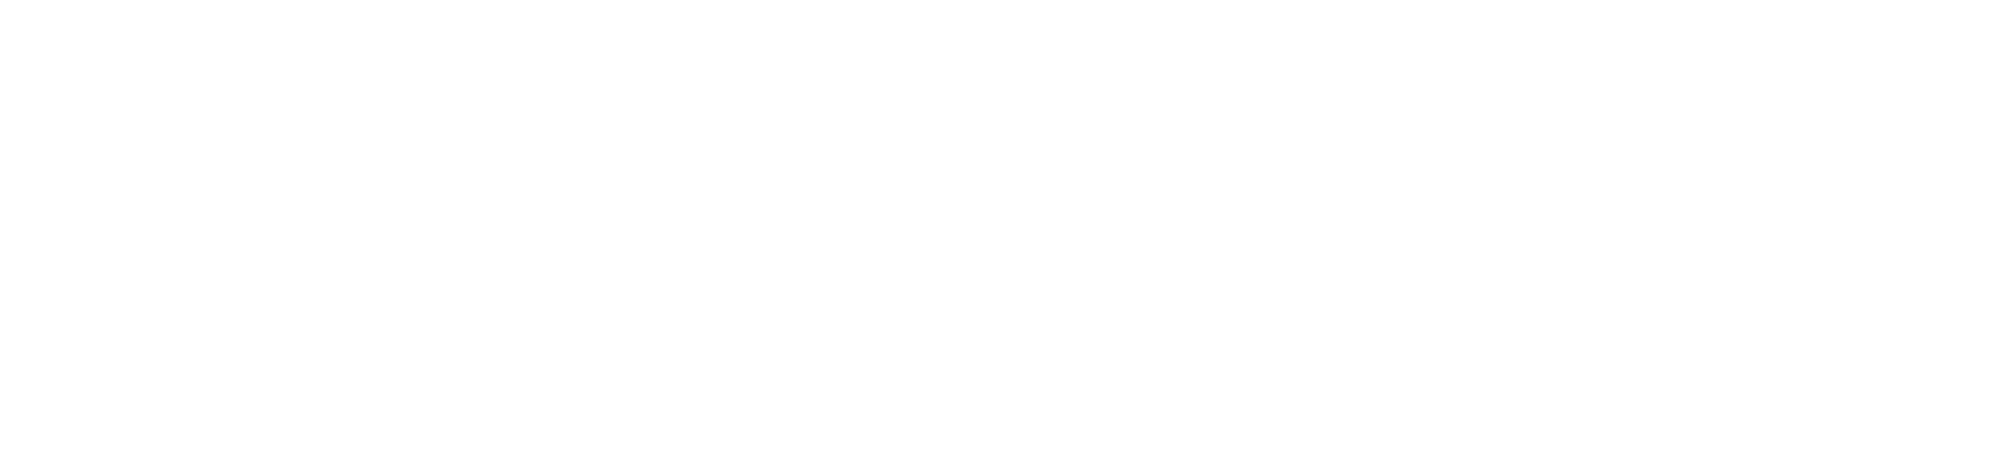 dark souls series site